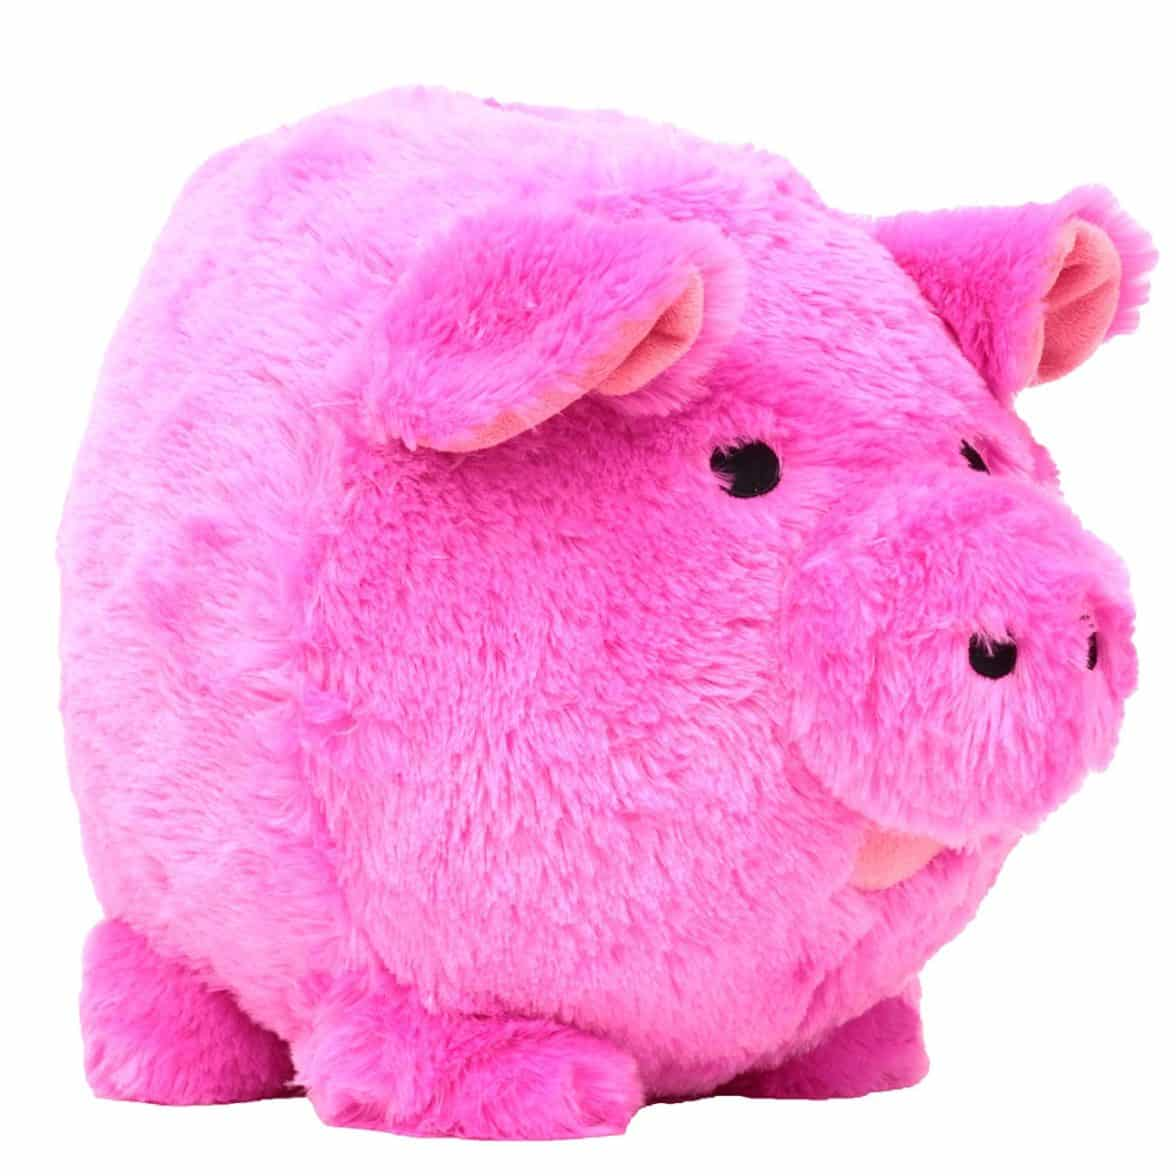 Pink Plastic Piggy Banks Buy Jumbo Pink Plush Piggy Bank The Piggy Store